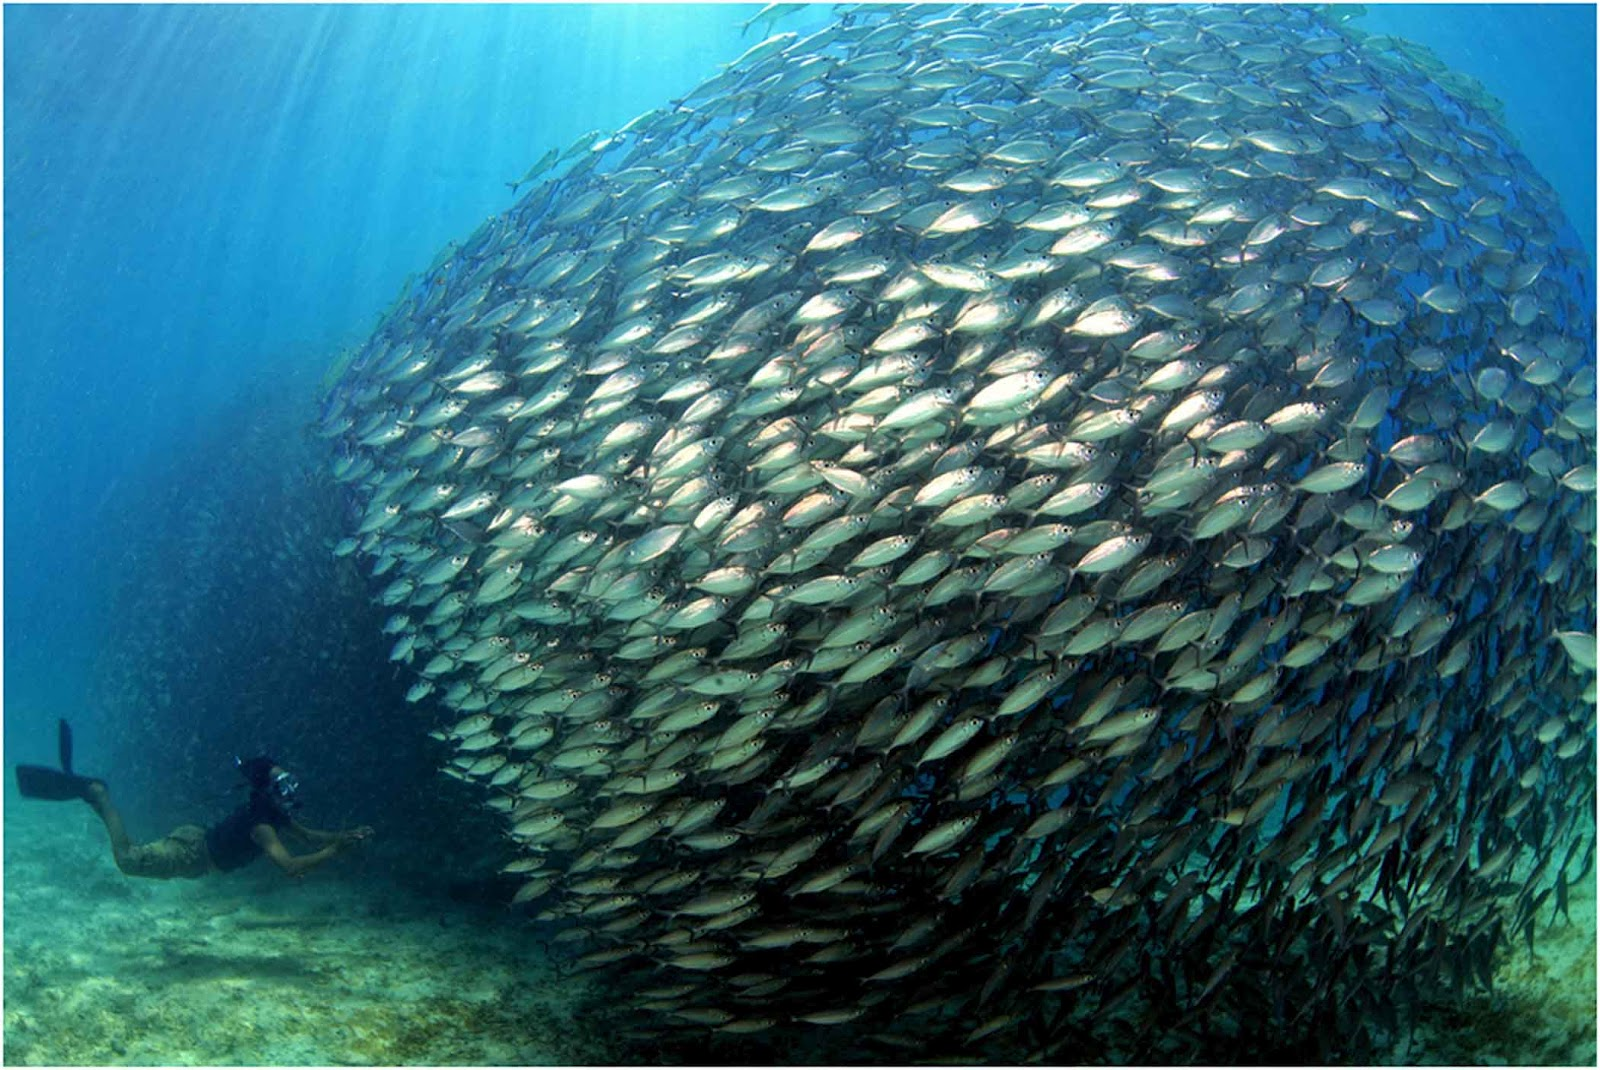 Learning from fish schools